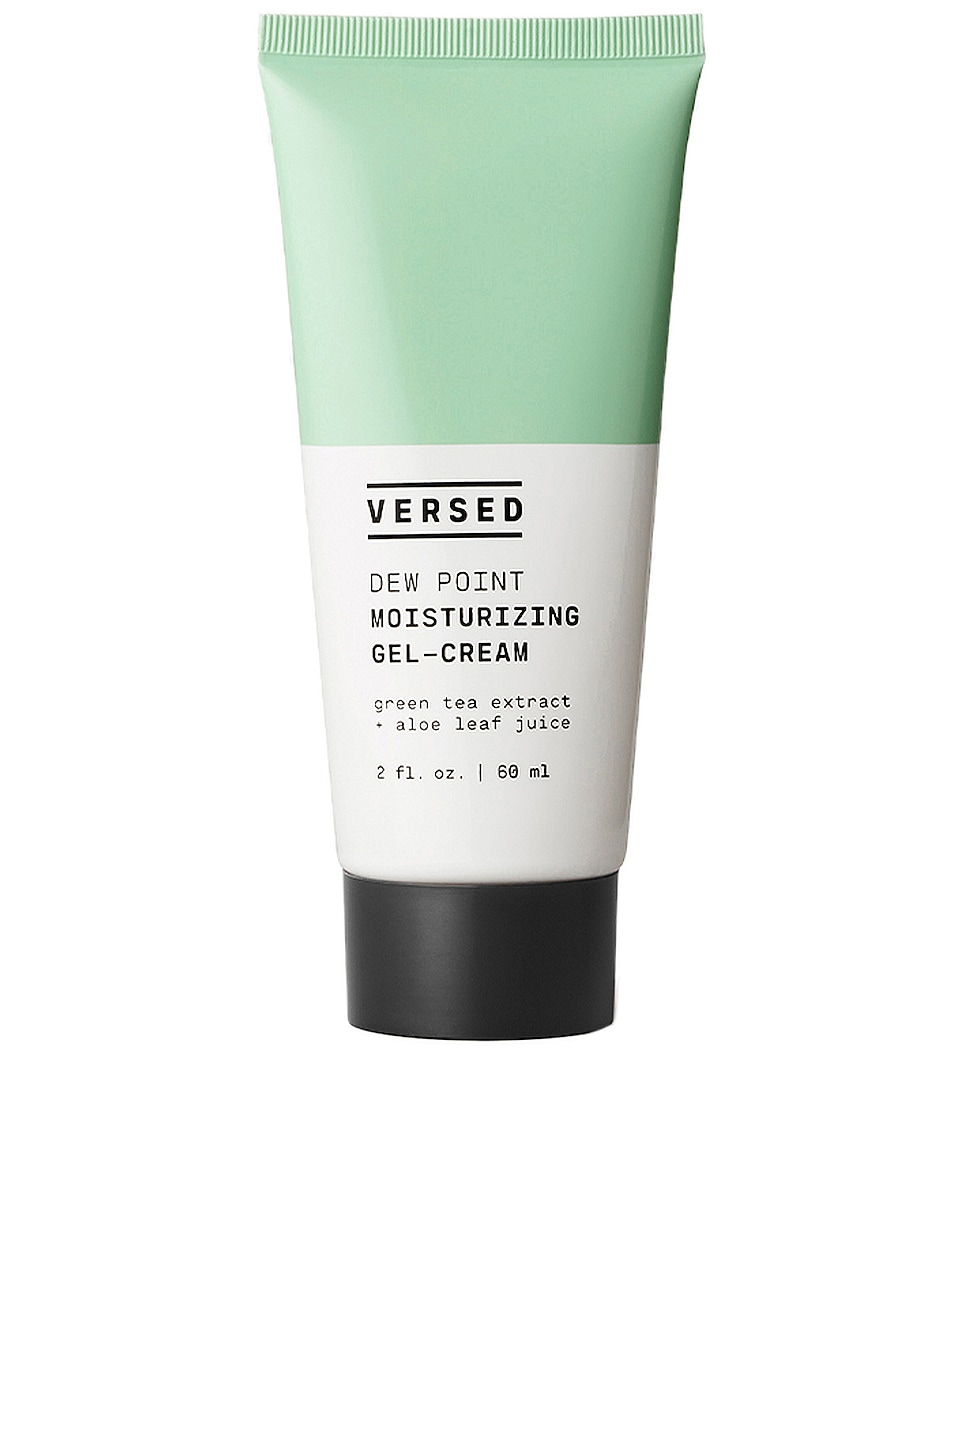 VERSED Dew Point Moisturizing Gel Cream